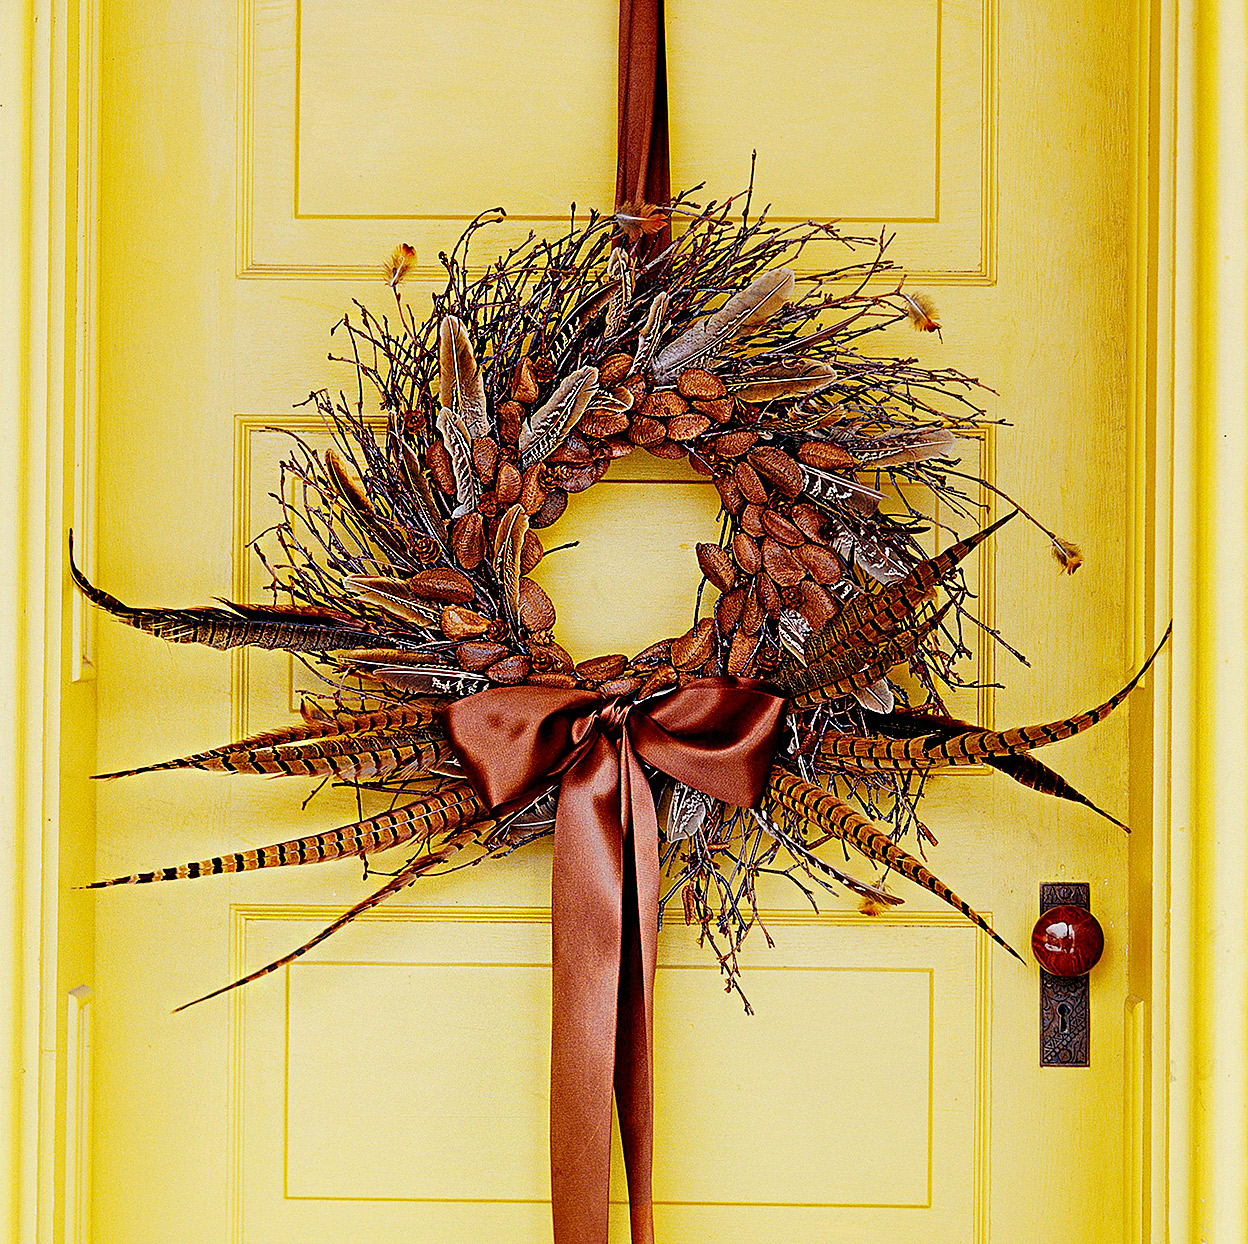 Wreath made of pheasant feathers